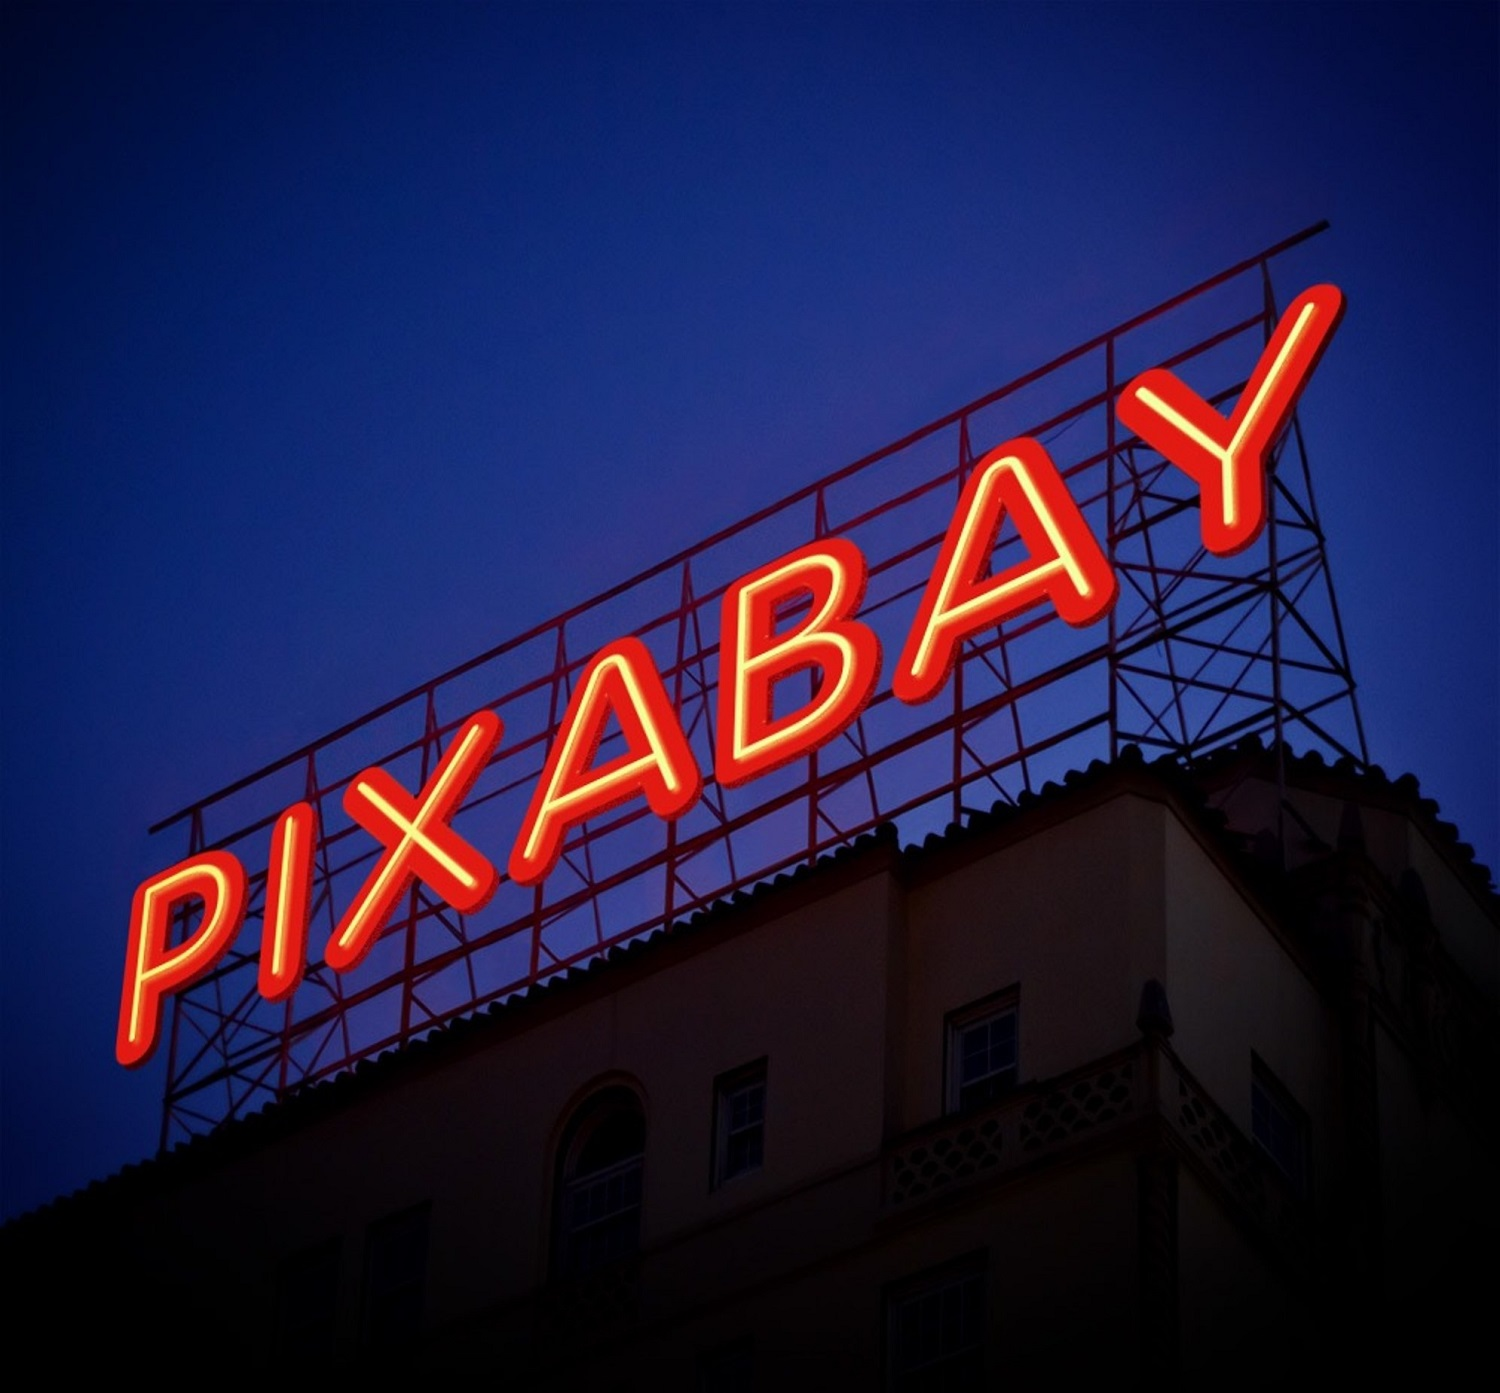 Free images at Pixabay